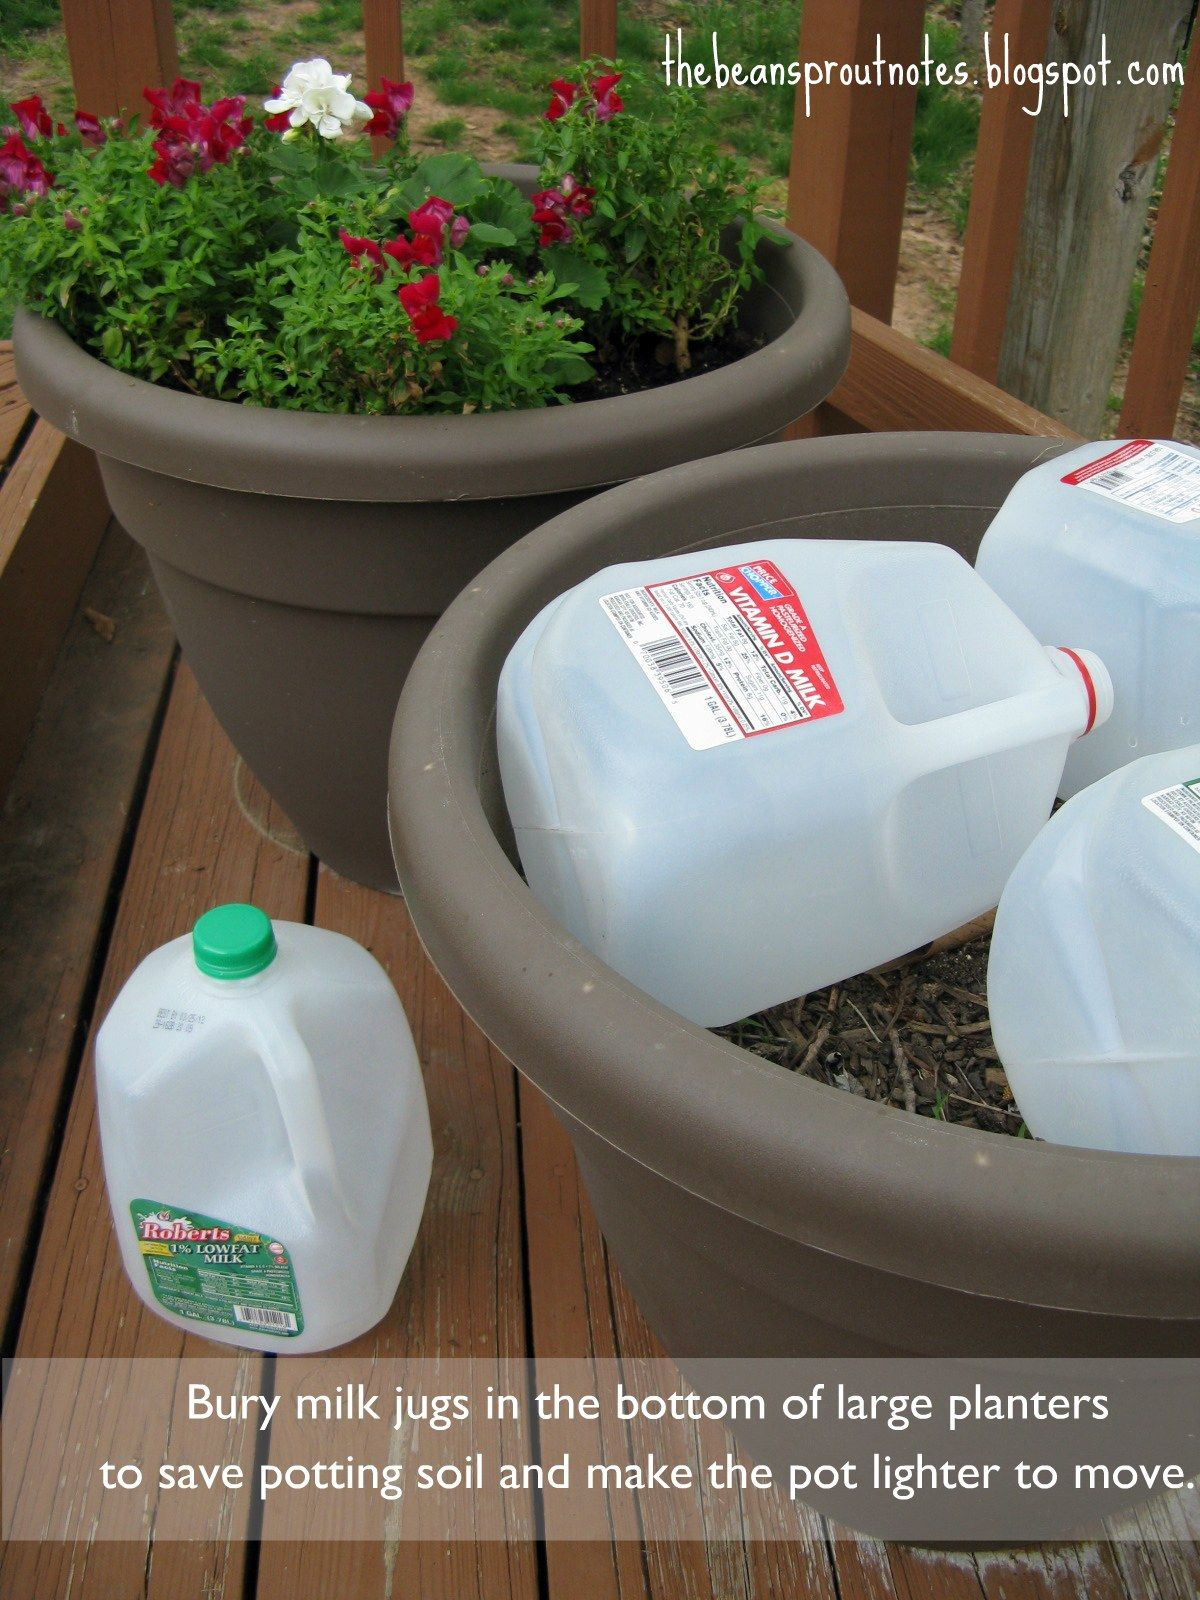 When planting in large planter pot, place plastic milk jugs inside the  bottom of your pot before filling with soil. You'll save money on soil!